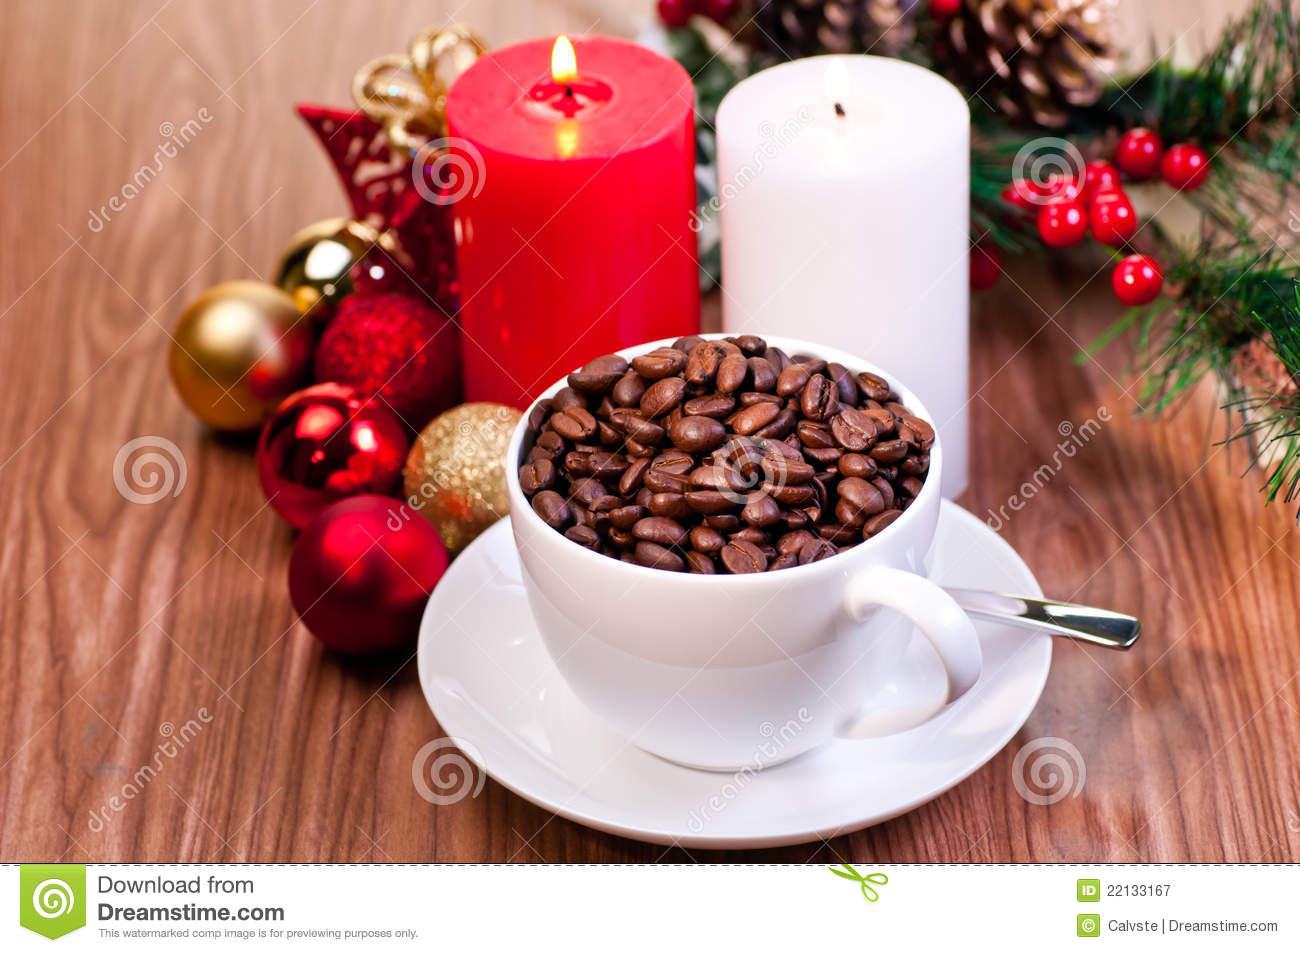 ... Free Stock Photography: Christmas cup of coffee beans on wooden table